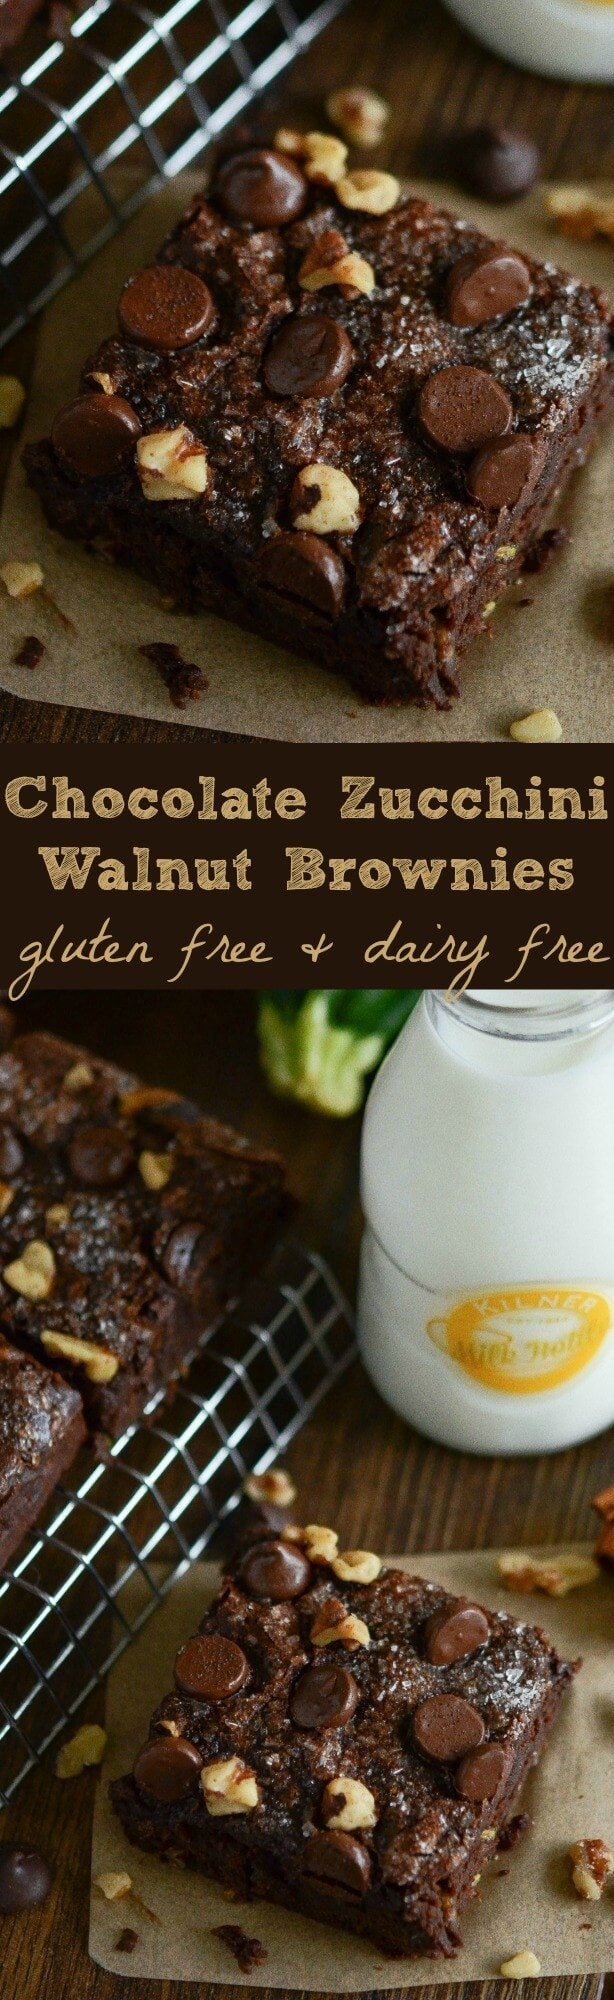 Chocolate Zucchini Walnut Brownies - rich dark chocolate brownies filled with zucchini, cinnamon and walnuts are gluten free and diary free!